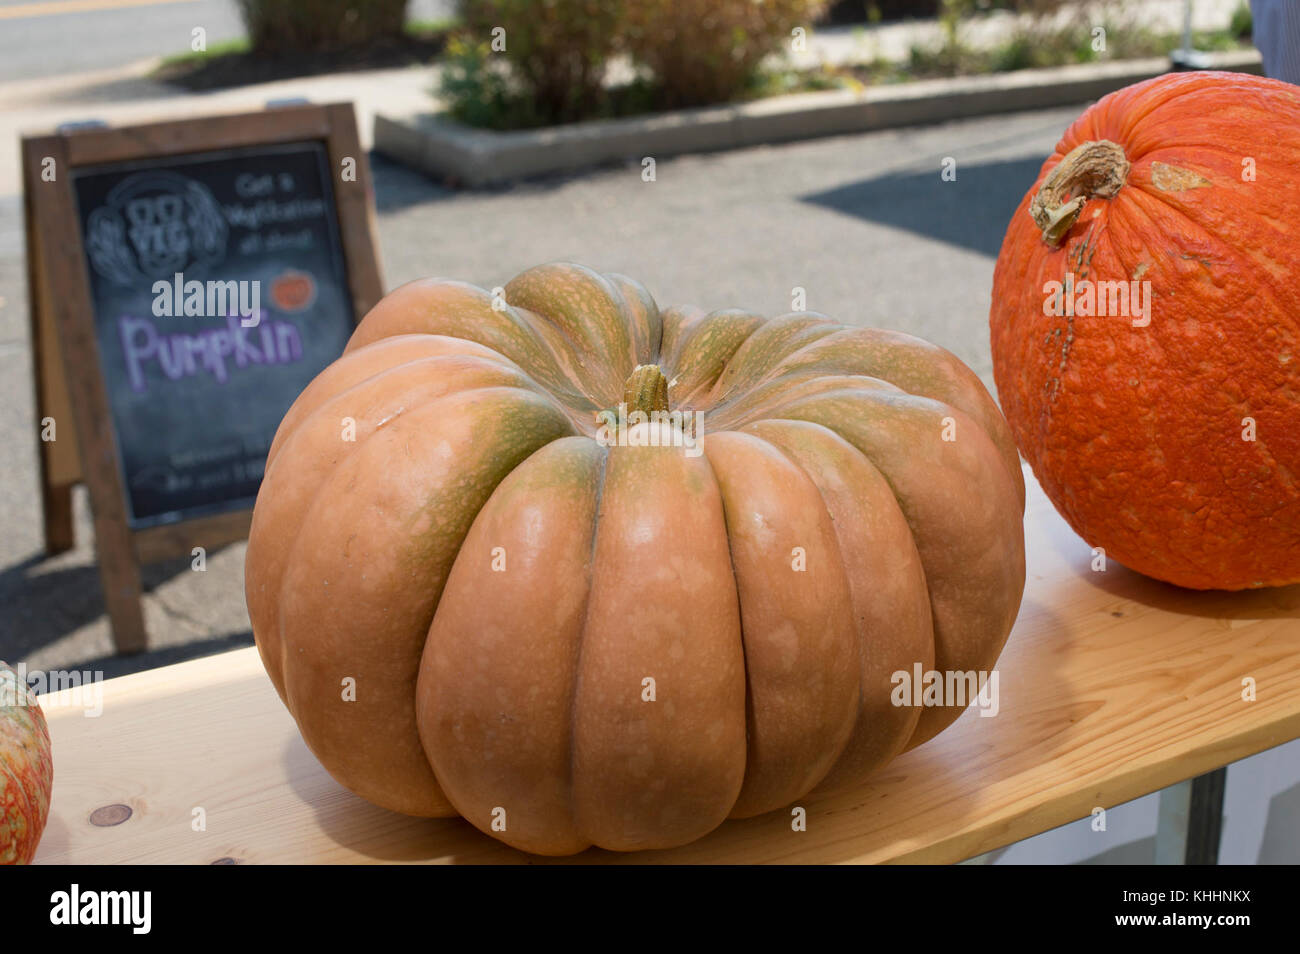 hight resolution of the orange fluted and flat fairytale pumpkin and the deep orange and rough surfaced warty